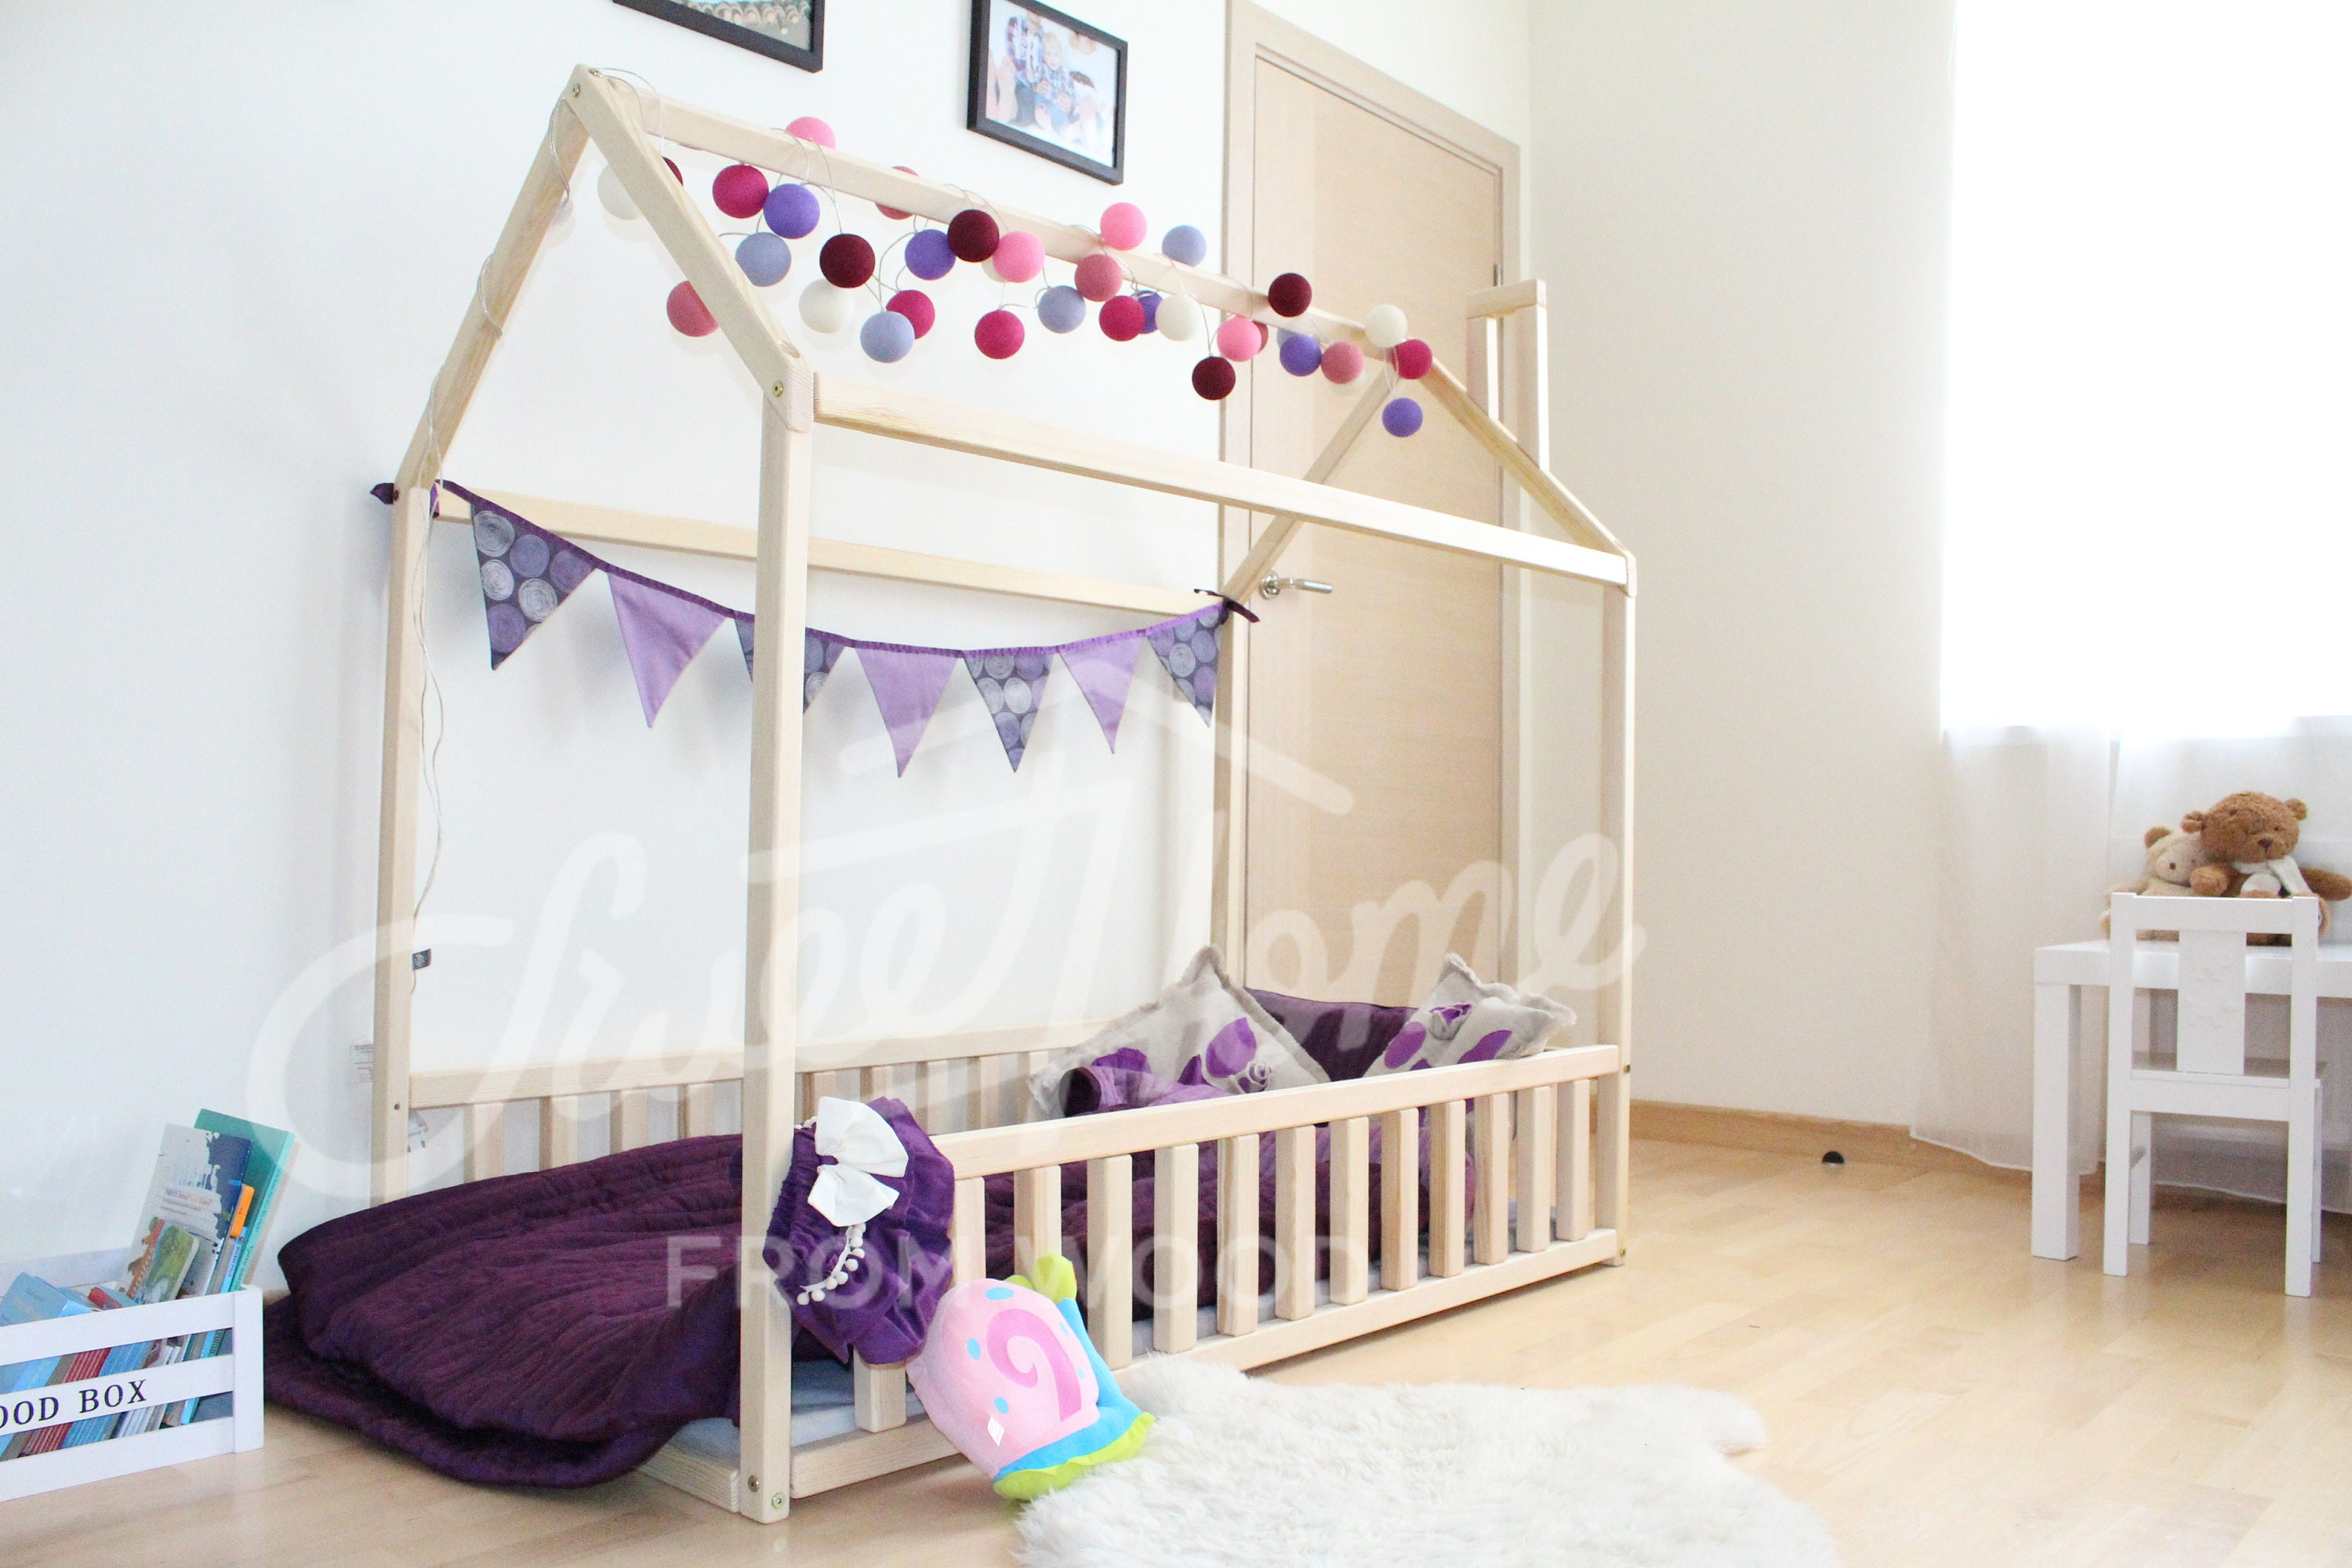 wood bed twin children bed montessori bed kid bed children. Black Bedroom Furniture Sets. Home Design Ideas